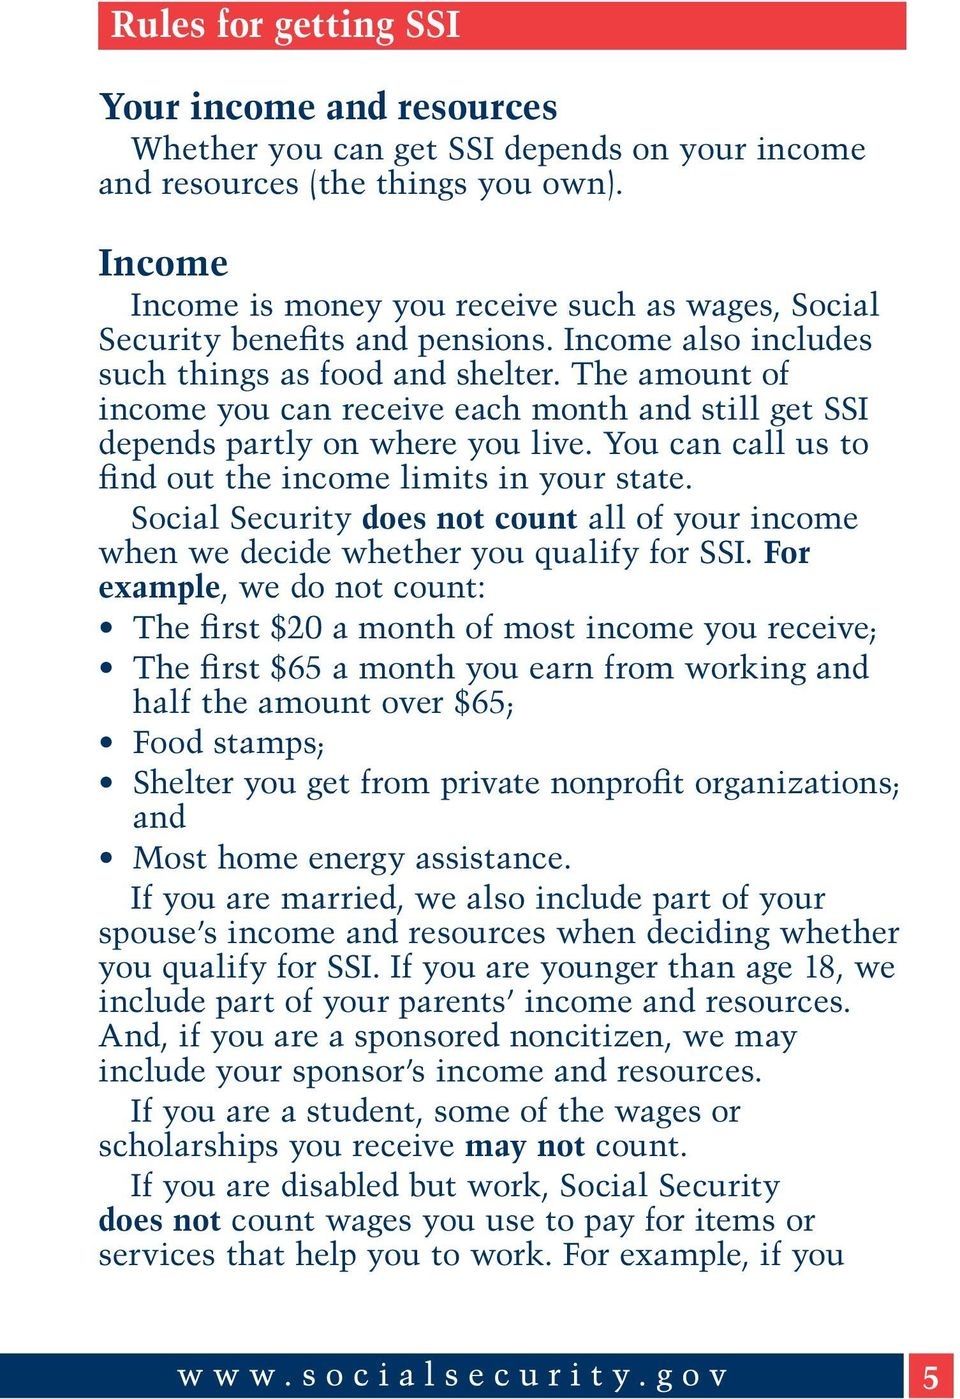 The amount of income you can receive each month and still get SSI depends partly on where you live. You can call us to find out the income limits in your state.